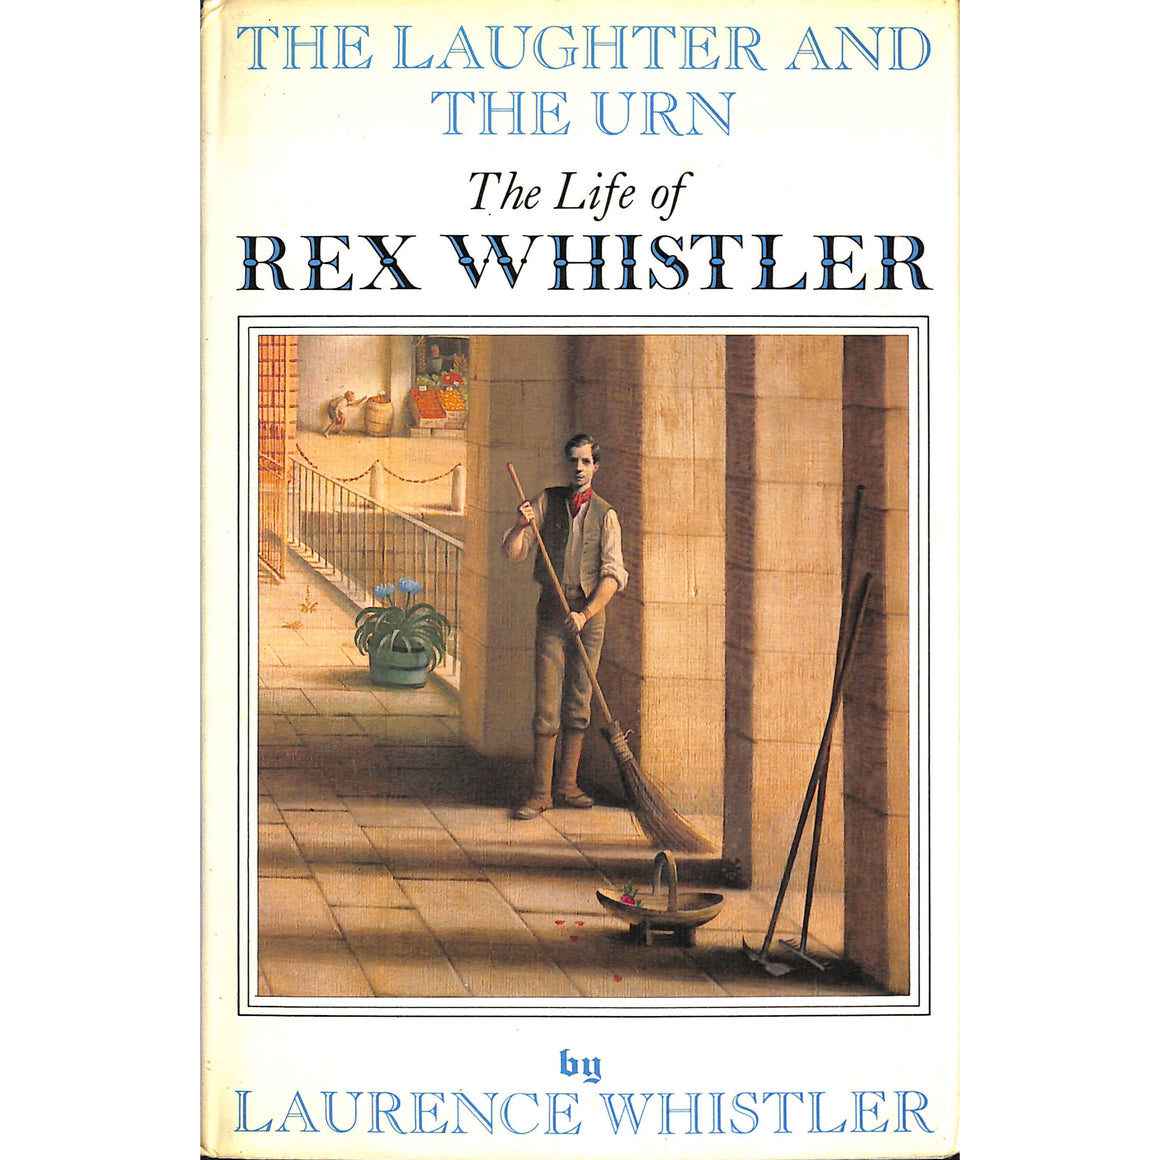 'The Laughter and the Urn: The Life of Rex Whistler'